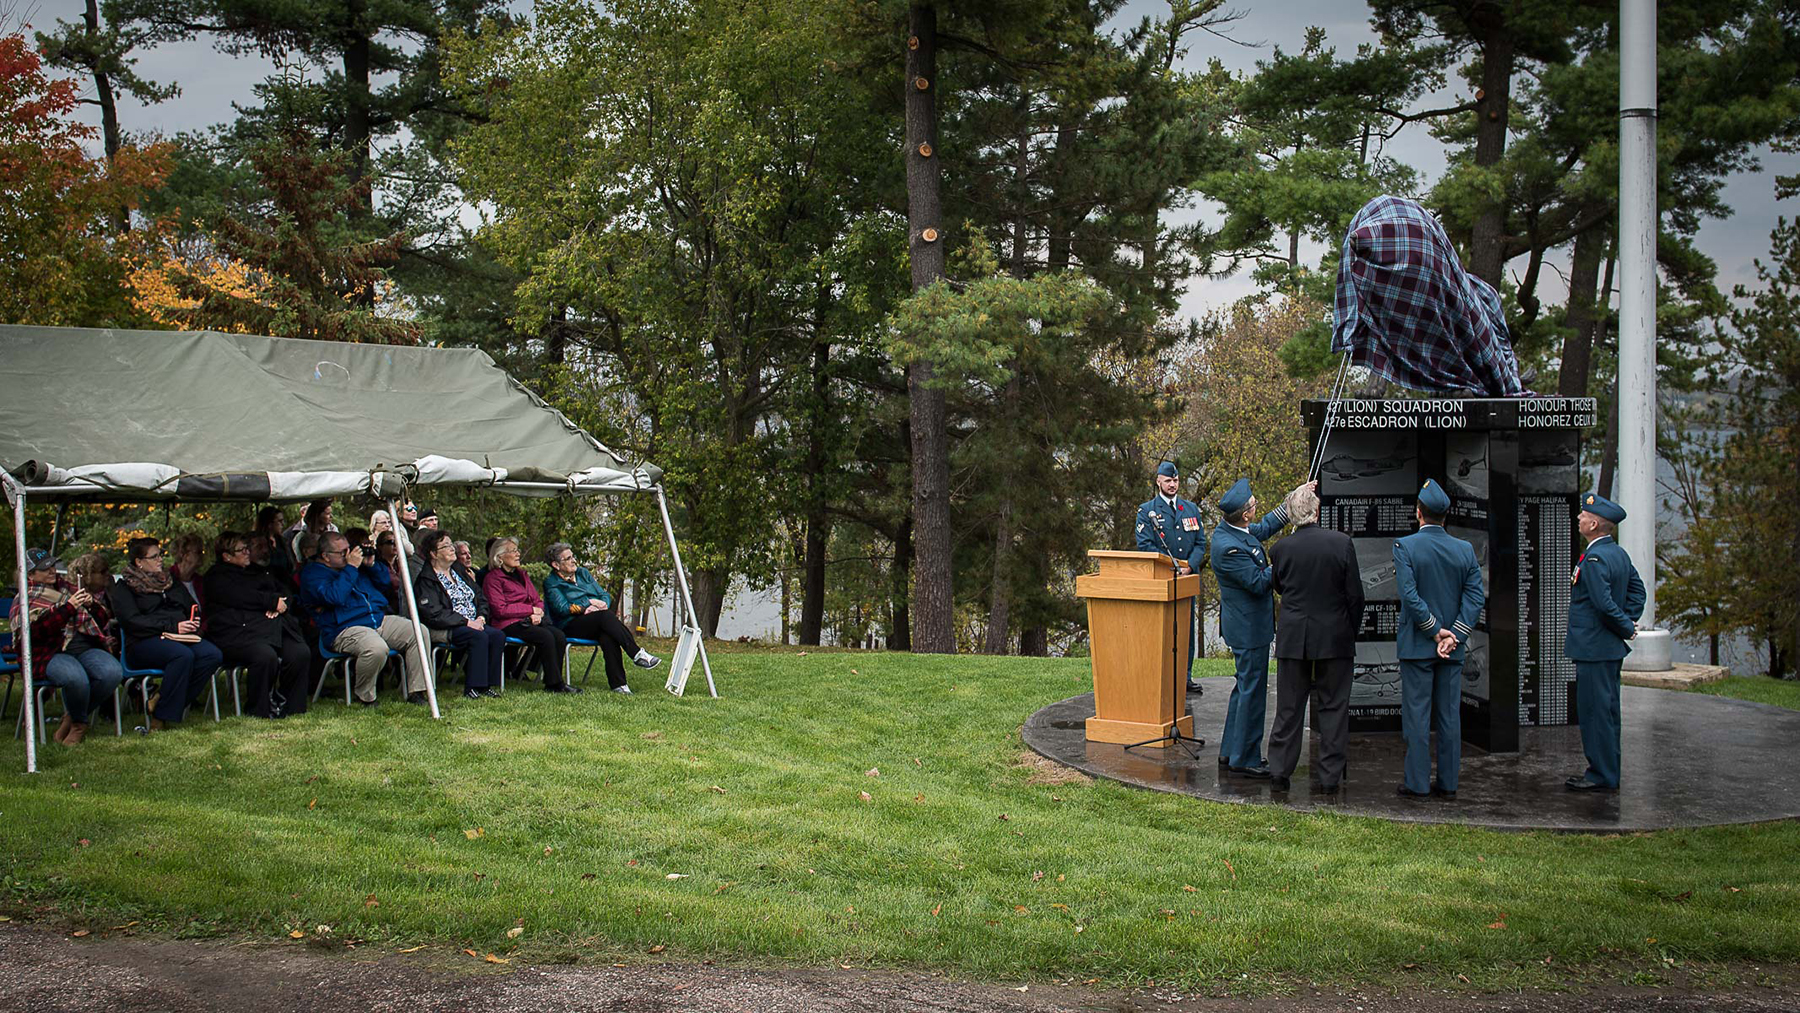 427 Special Operations Aviation Squadron members and friends attend the 427 Squadron cenotaph unveiling in Cobden, Ontario, on October 15, 2017. PHOTO: DND, PH01-2017-0094-001